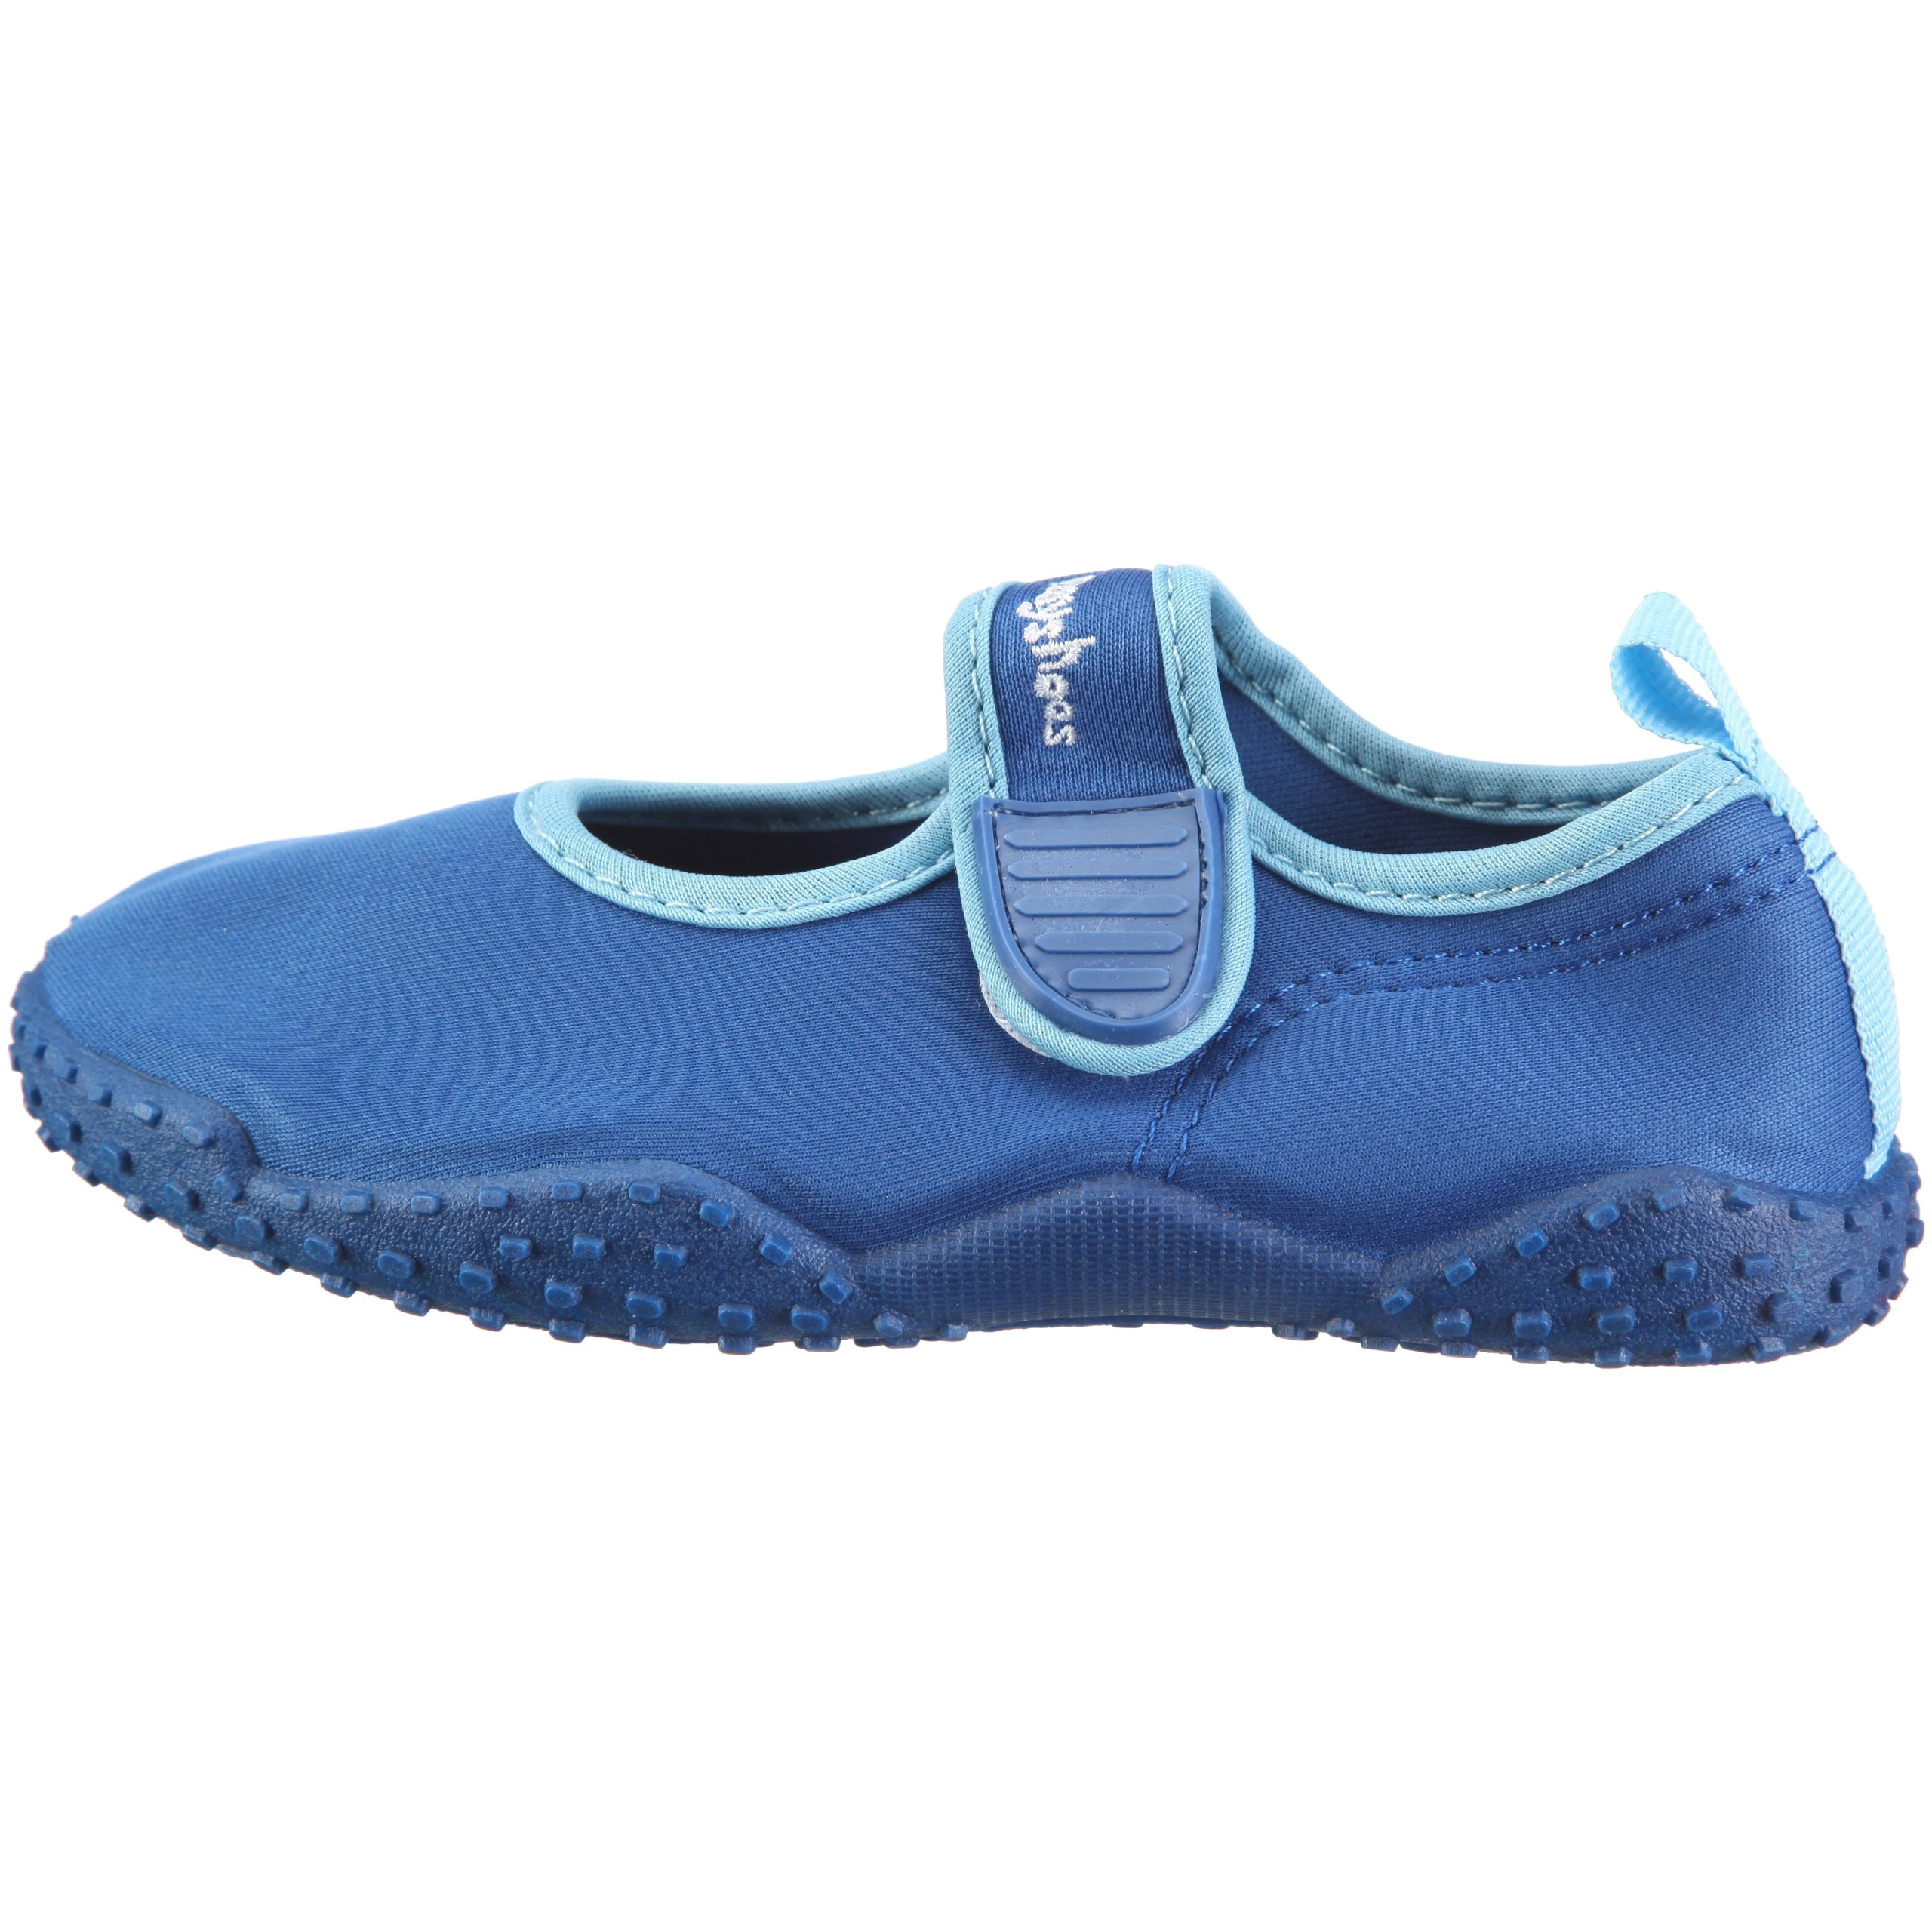 Playshoes Children's Aqua Beach Water Shoes (11.5 M US Little Kid, Blue) by Playshoes (Image #5)